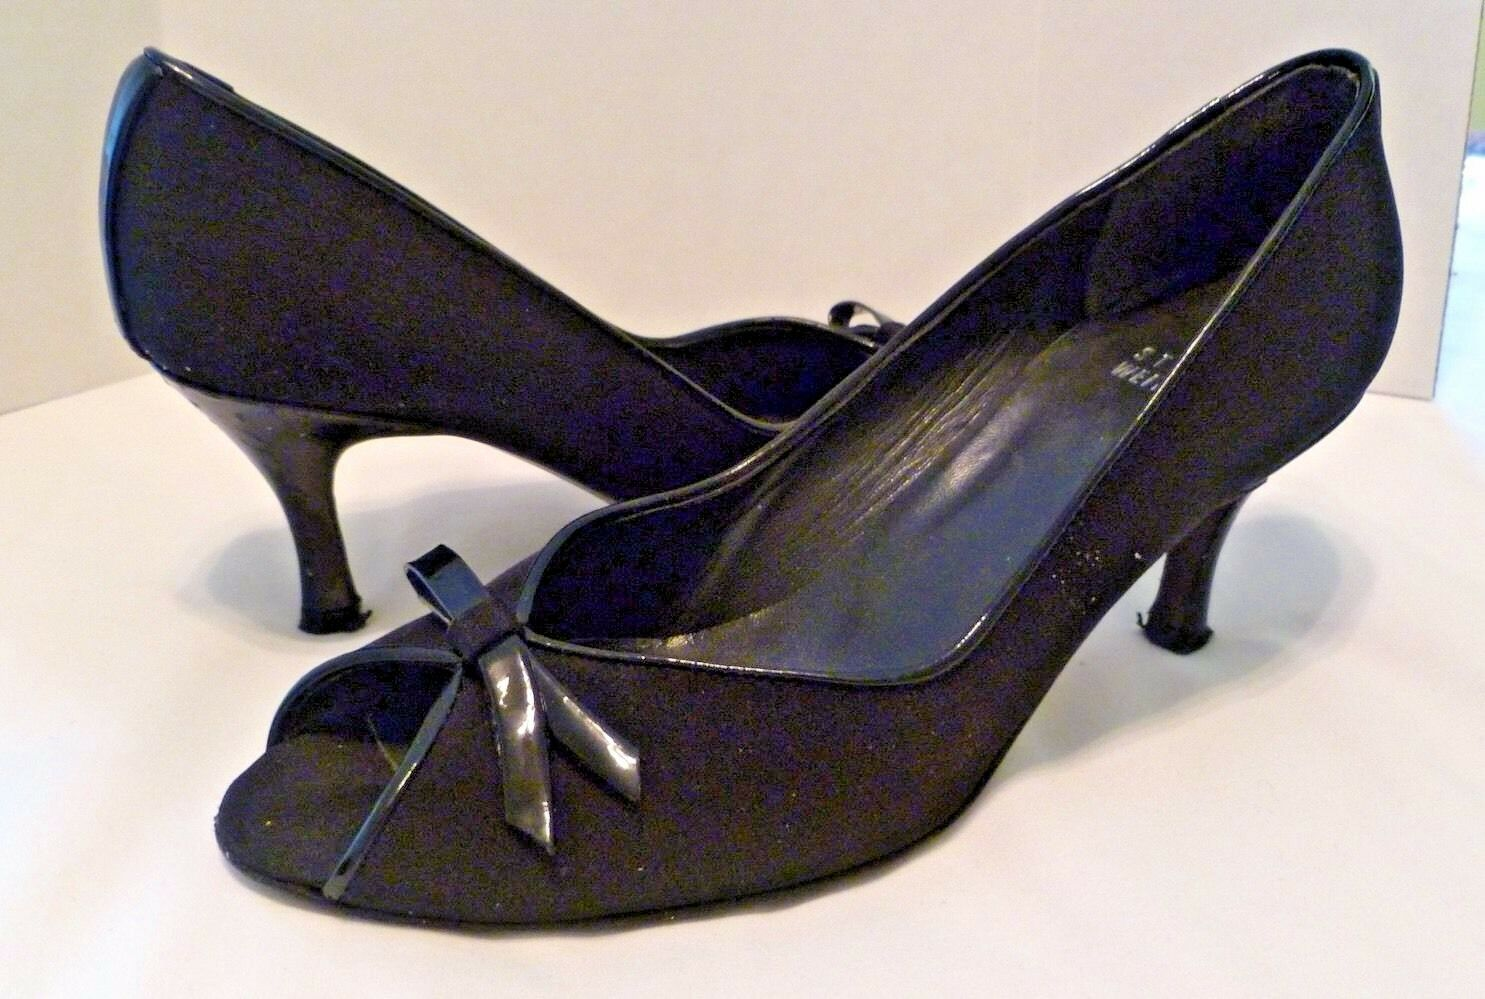 Stuart Weitzman Women Black Fabric Peep Toe Pumps Patent Bow Trim Sz 6.5 Narrow